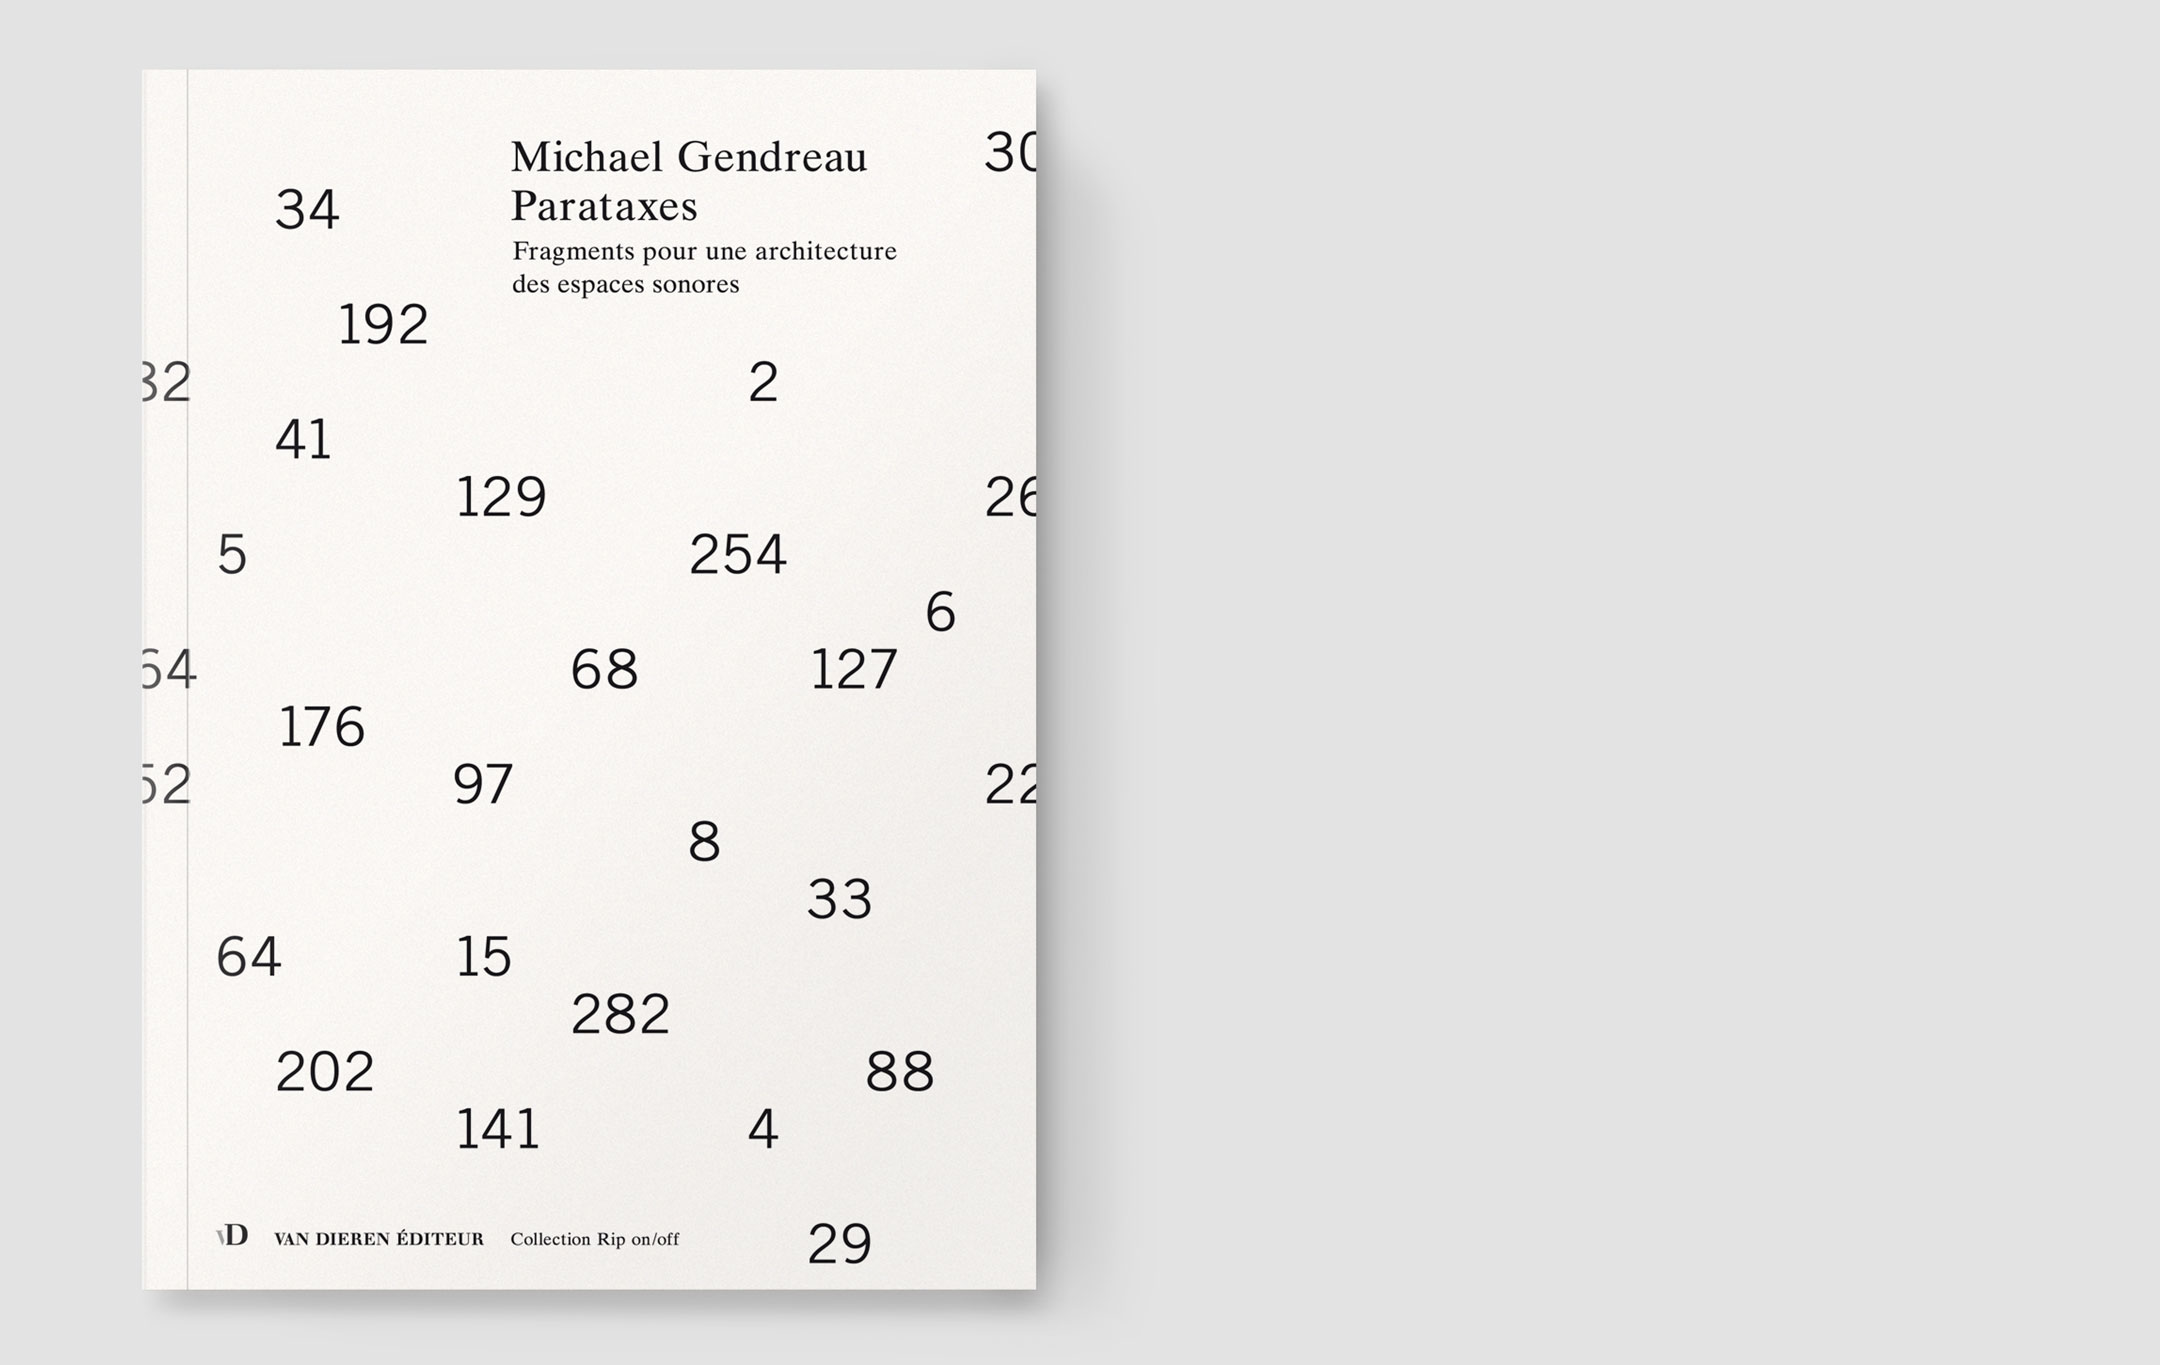 Michael Gendreau, Parataxes